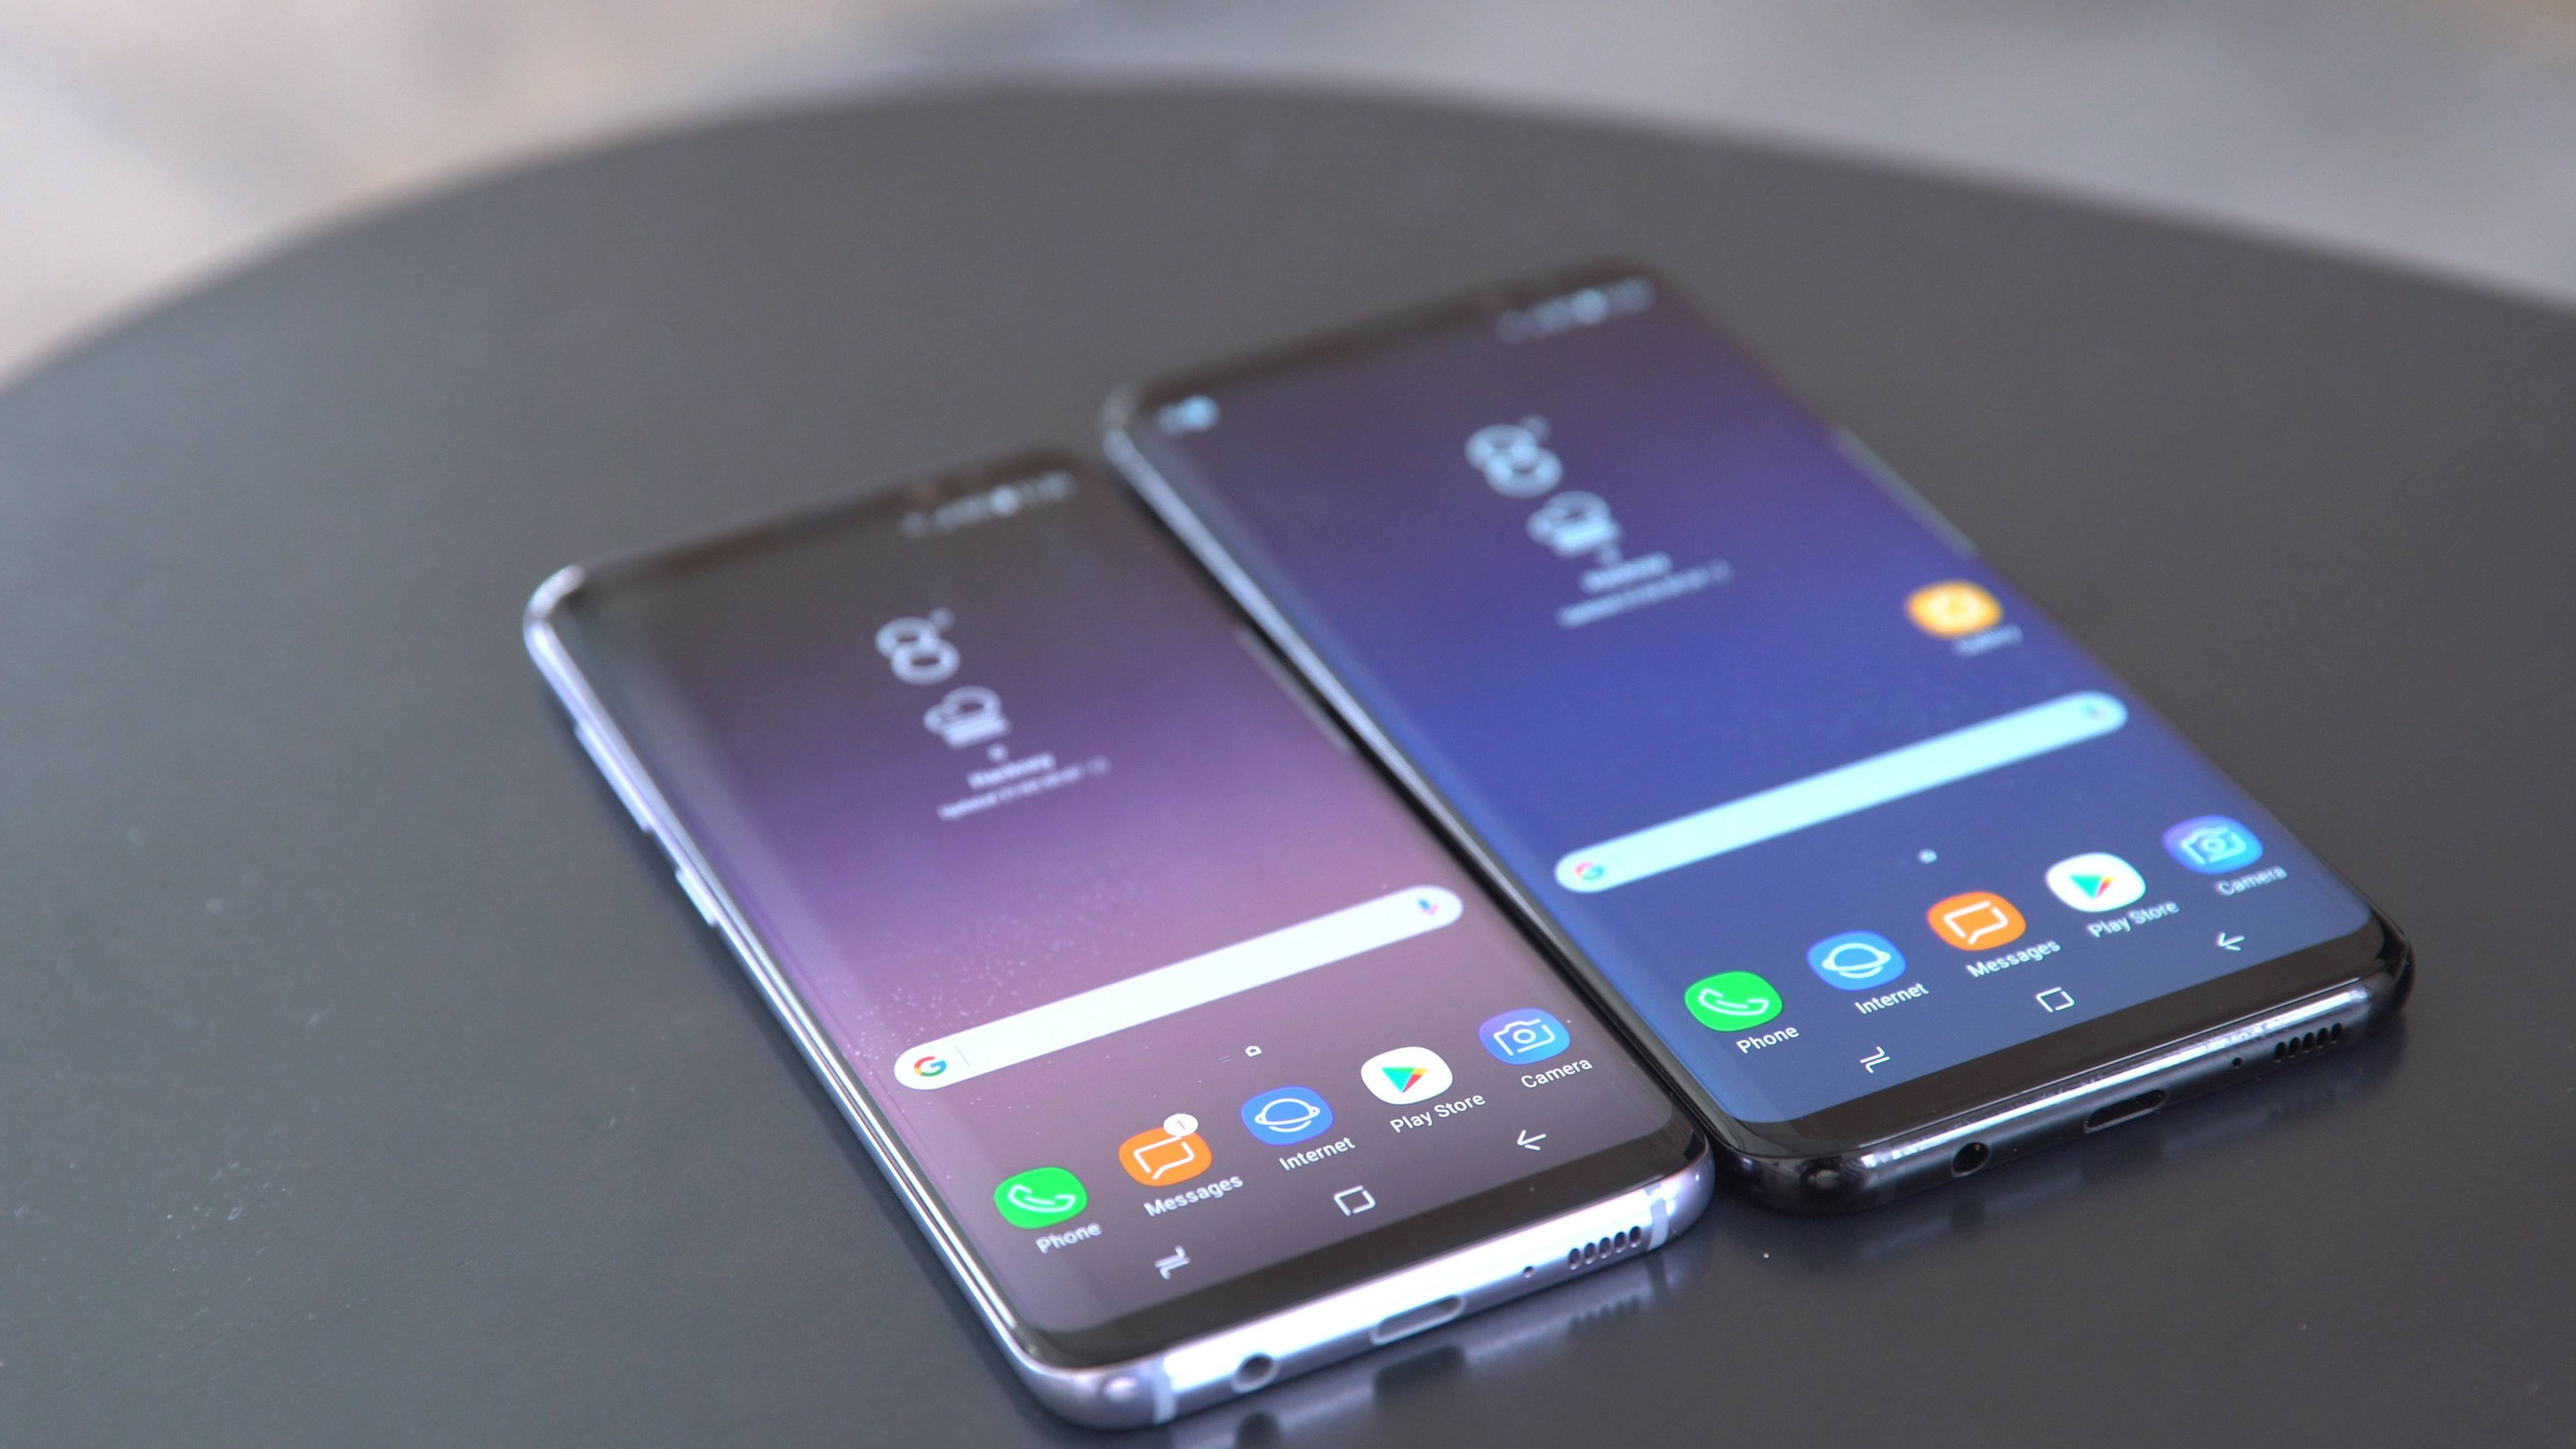 samsung galaxy s8 plus mit dual sim in deutschland kaufen. Black Bedroom Furniture Sets. Home Design Ideas